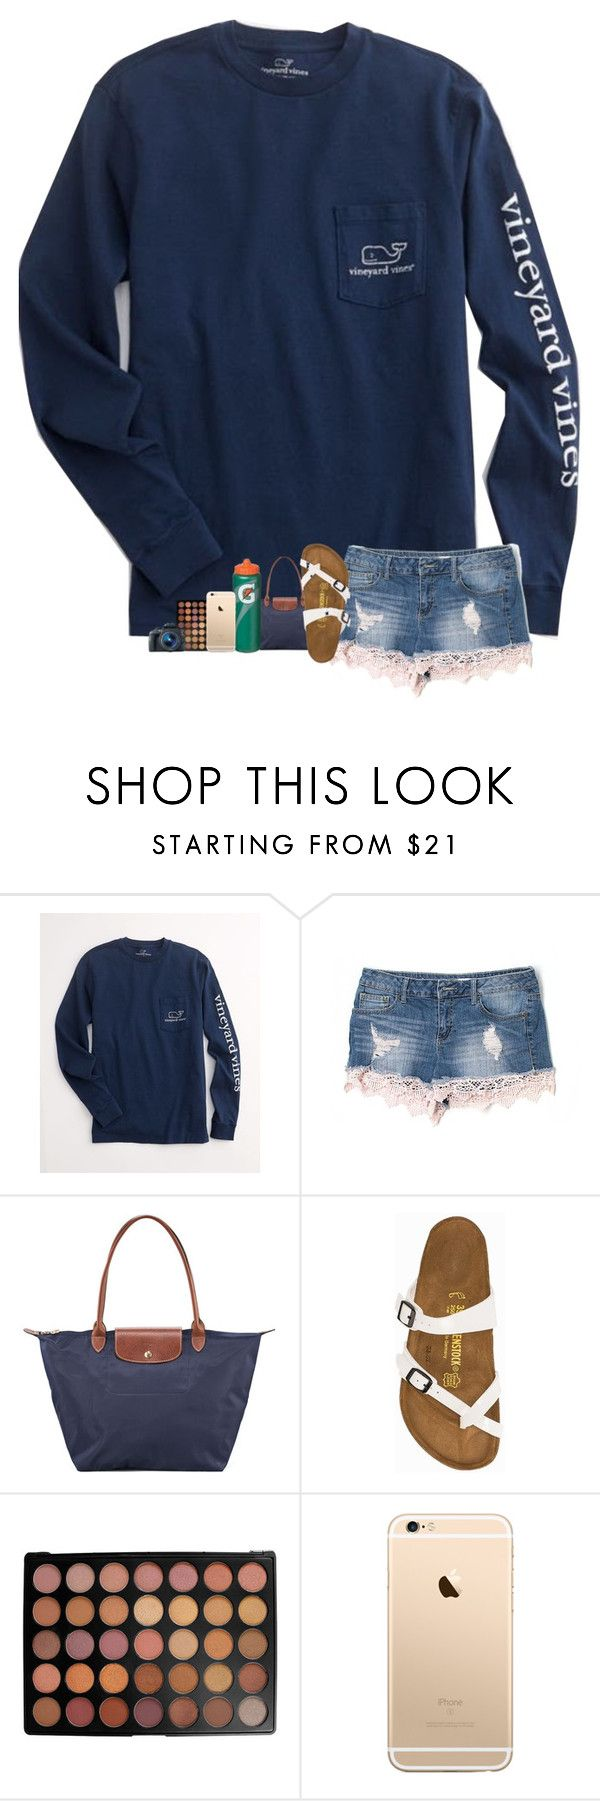 """""""OOTD :-)"""" by sanddollars ❤ liked on Polyvore featuring Vineyard Vines, Altar'd State, Longchamp, Birkenstock, Morphe and Eos"""